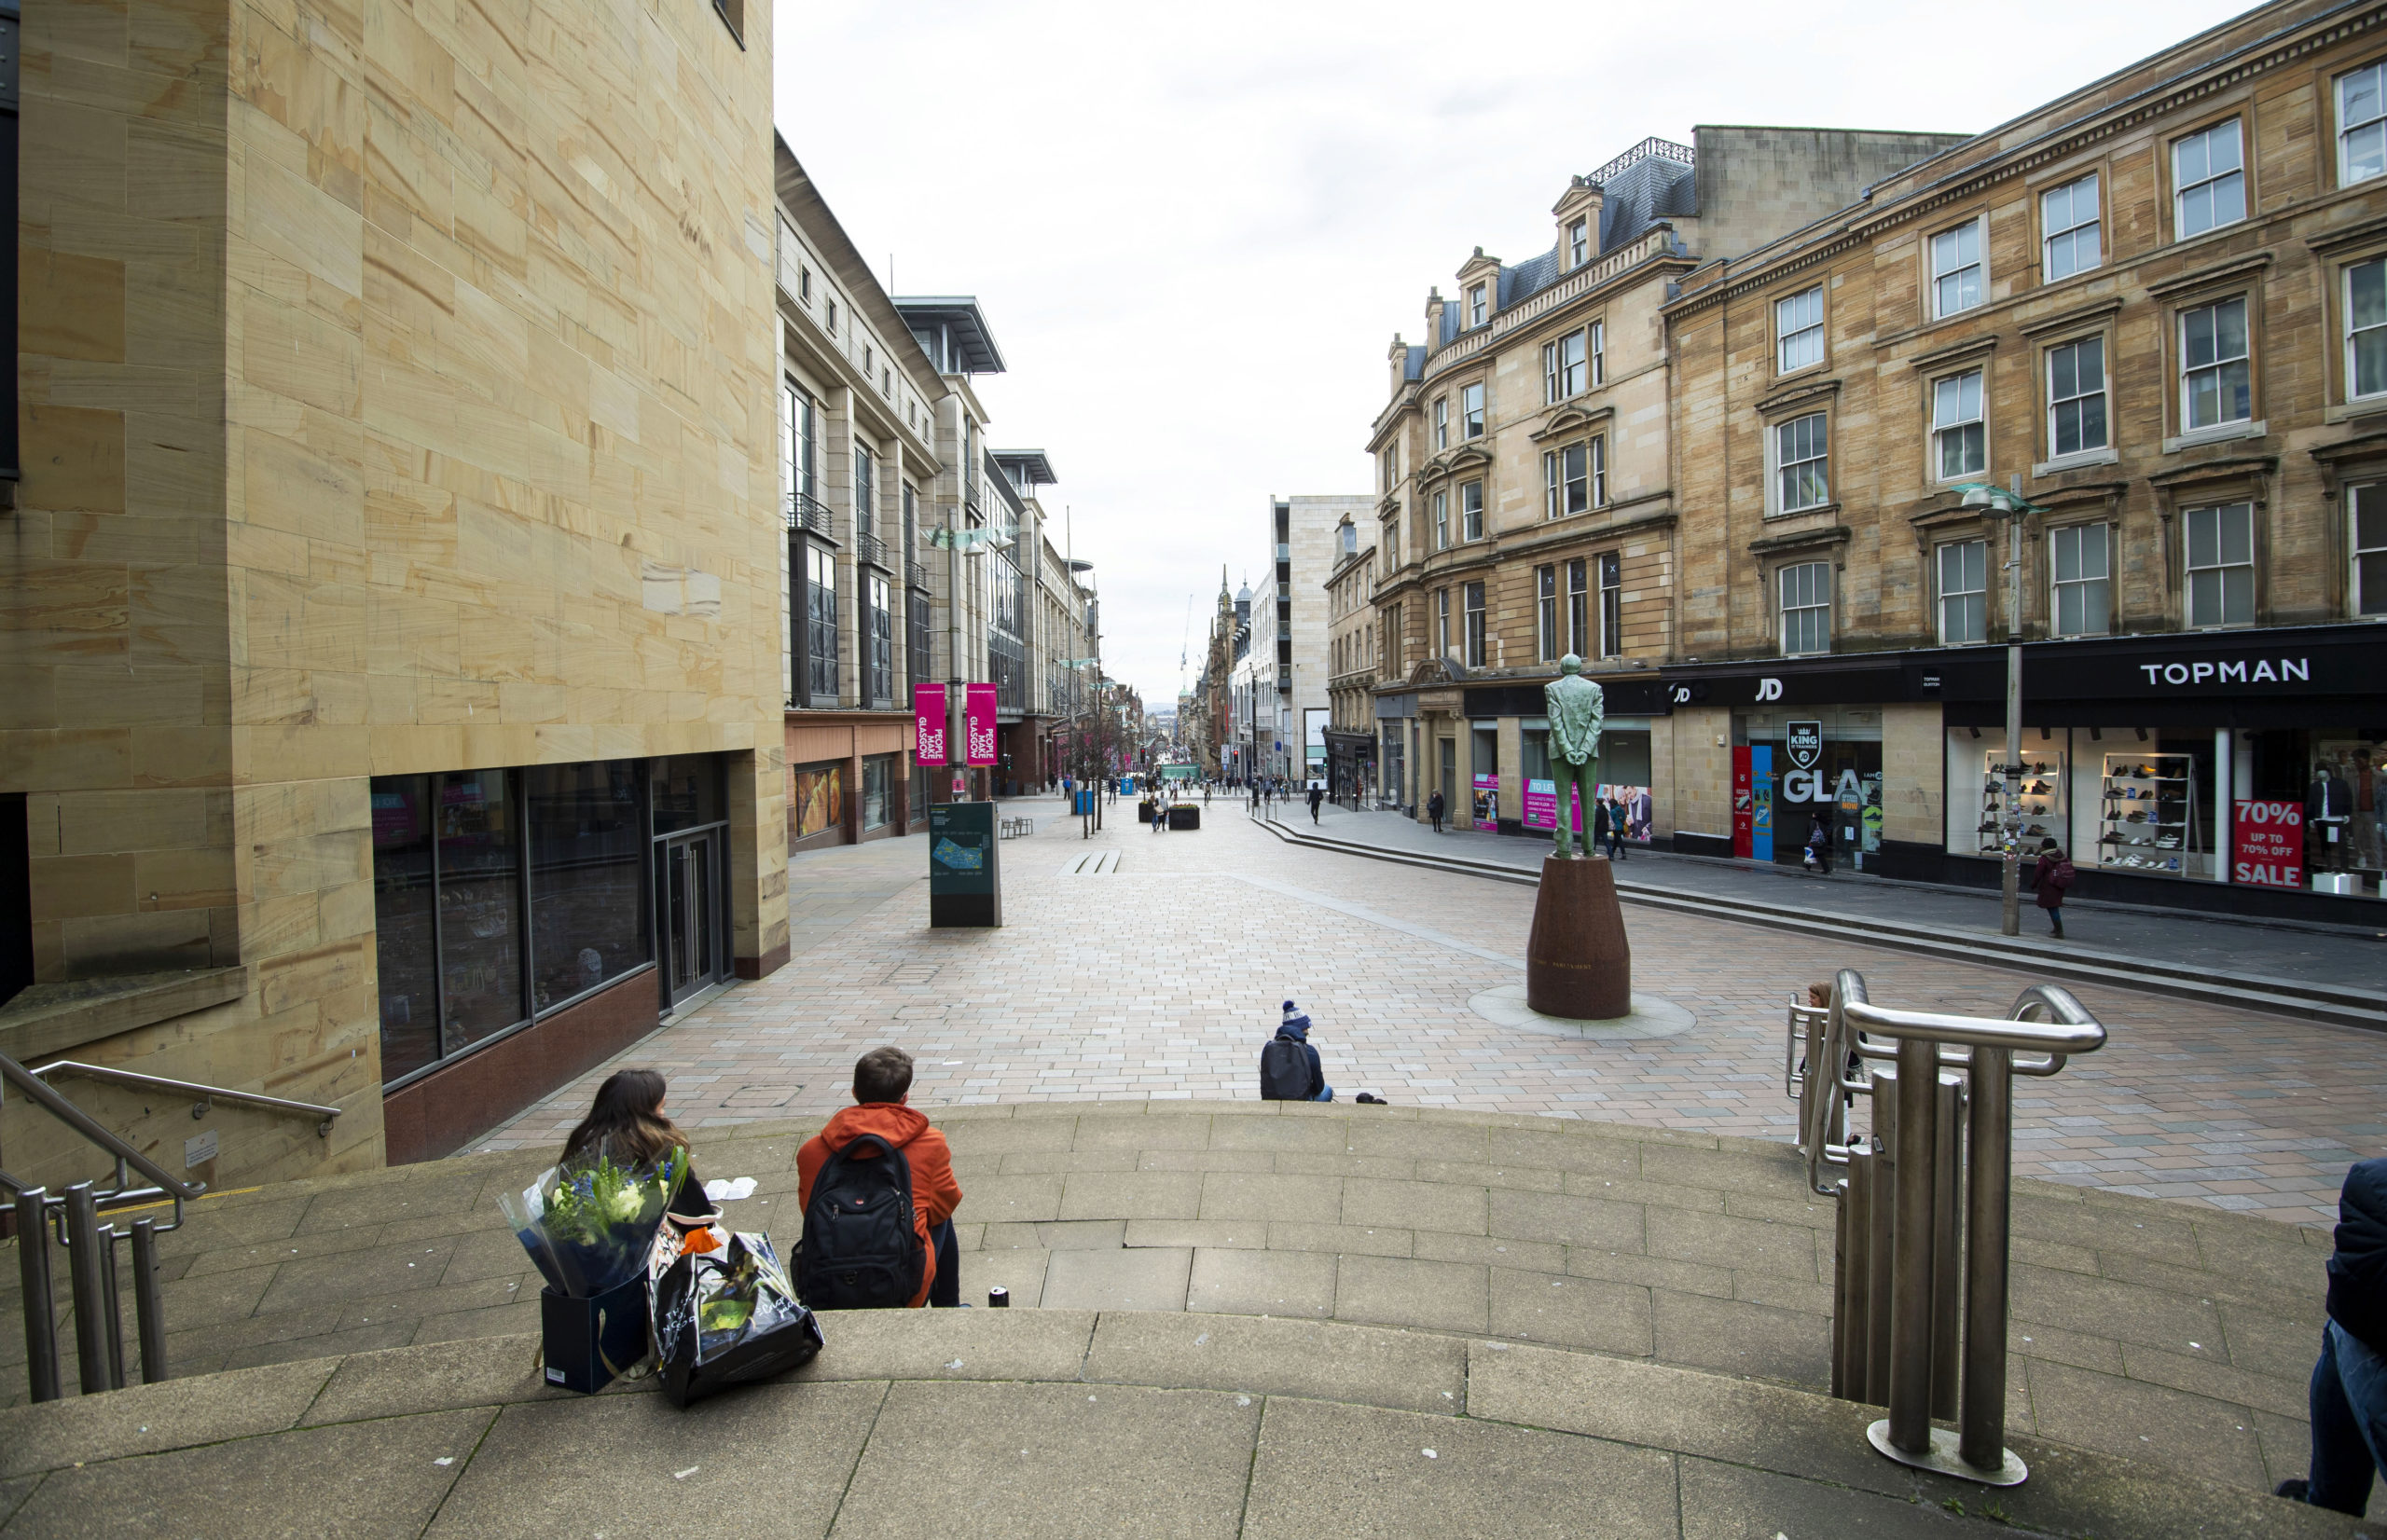 A quiet Buchanan Street in Glasgow during lockdown